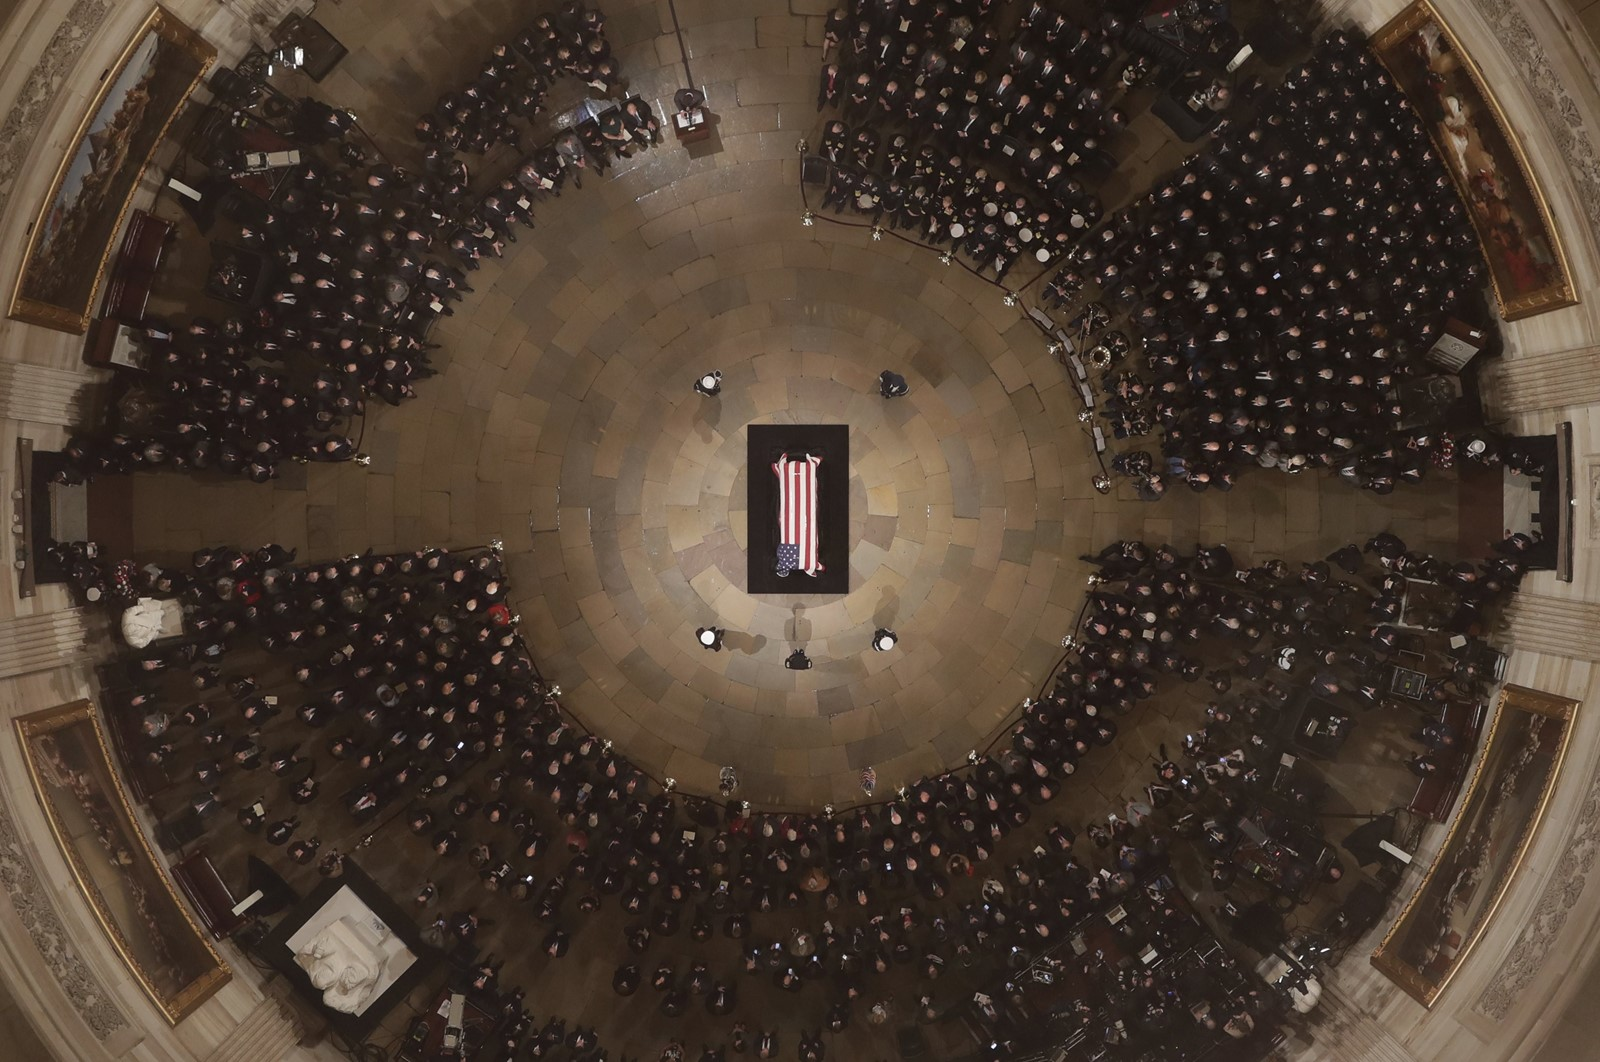 Former President George H.W. Bush lies in state in a flag-draped casket before a crowd of mourners in the U.S. Capitol Rotunda. — Photograph: Morry Gash/Pool Photo.